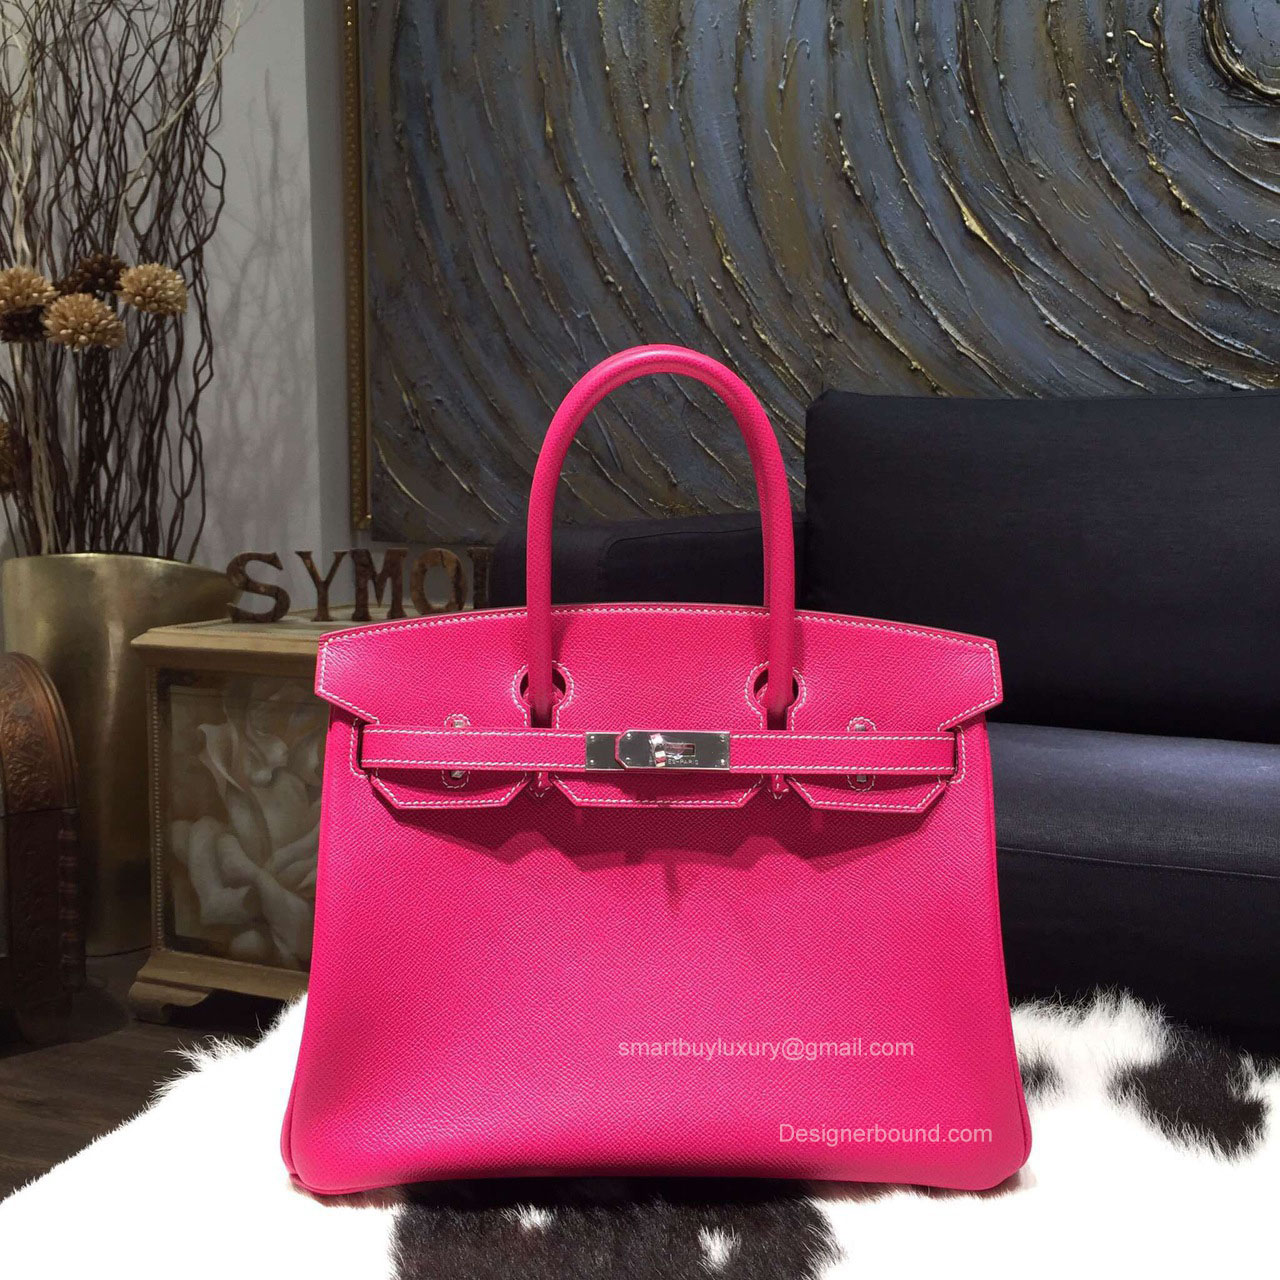 Hermes Birkin 35 Bag Rose Tyrien E5 Epsom Leather Handstitched Silver hw